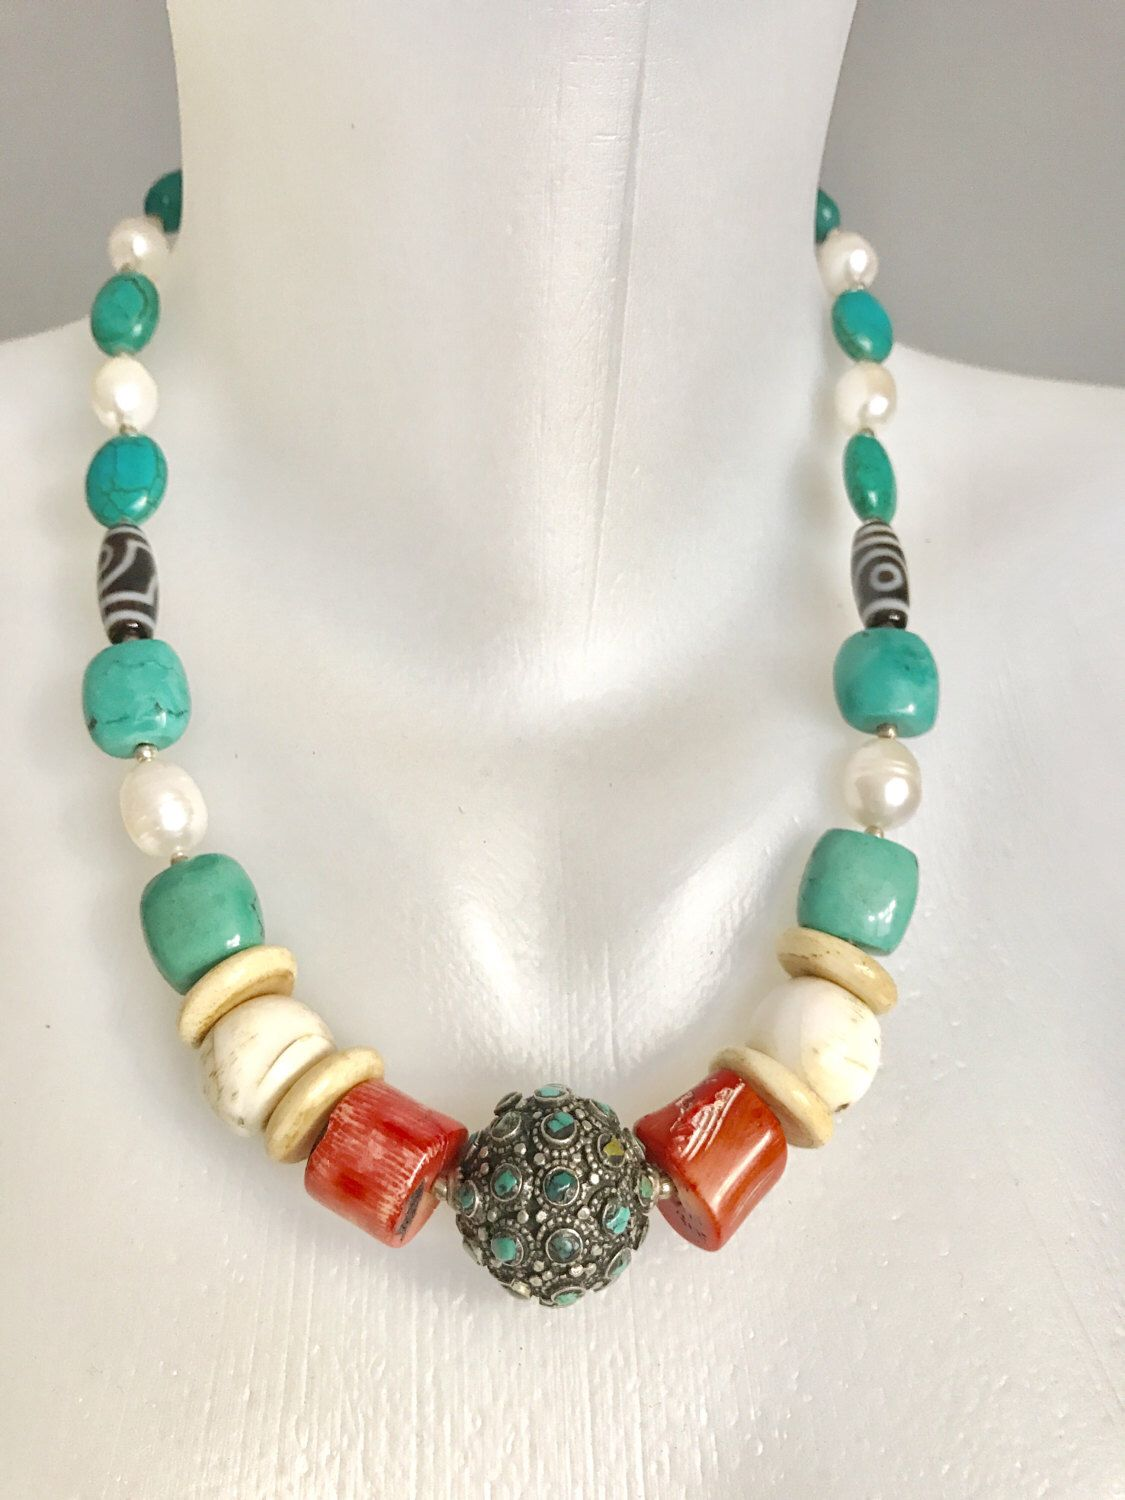 Tibetan Necklace Turquoise Necklace Chunky Necklace Etsy Chunky Bead Necklaces Beaded Necklace Chunky Turquoise Necklace